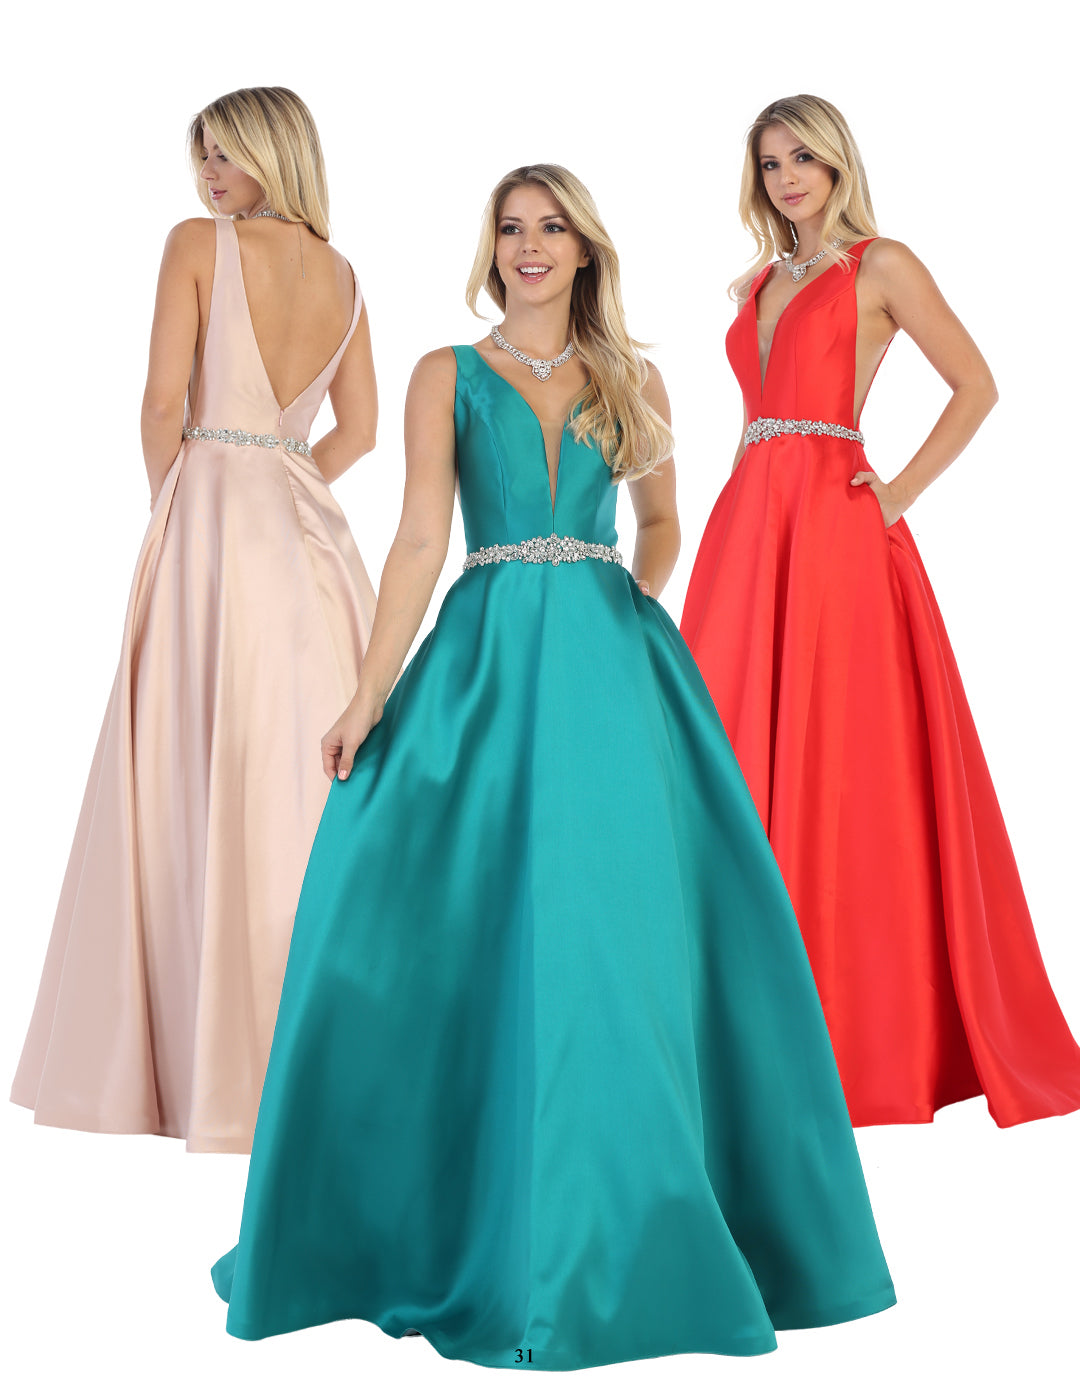 bd2781fb6e6db Satin Ball Gown With Sheer Inserts & Open Back | Norma Reed – NORMA REED